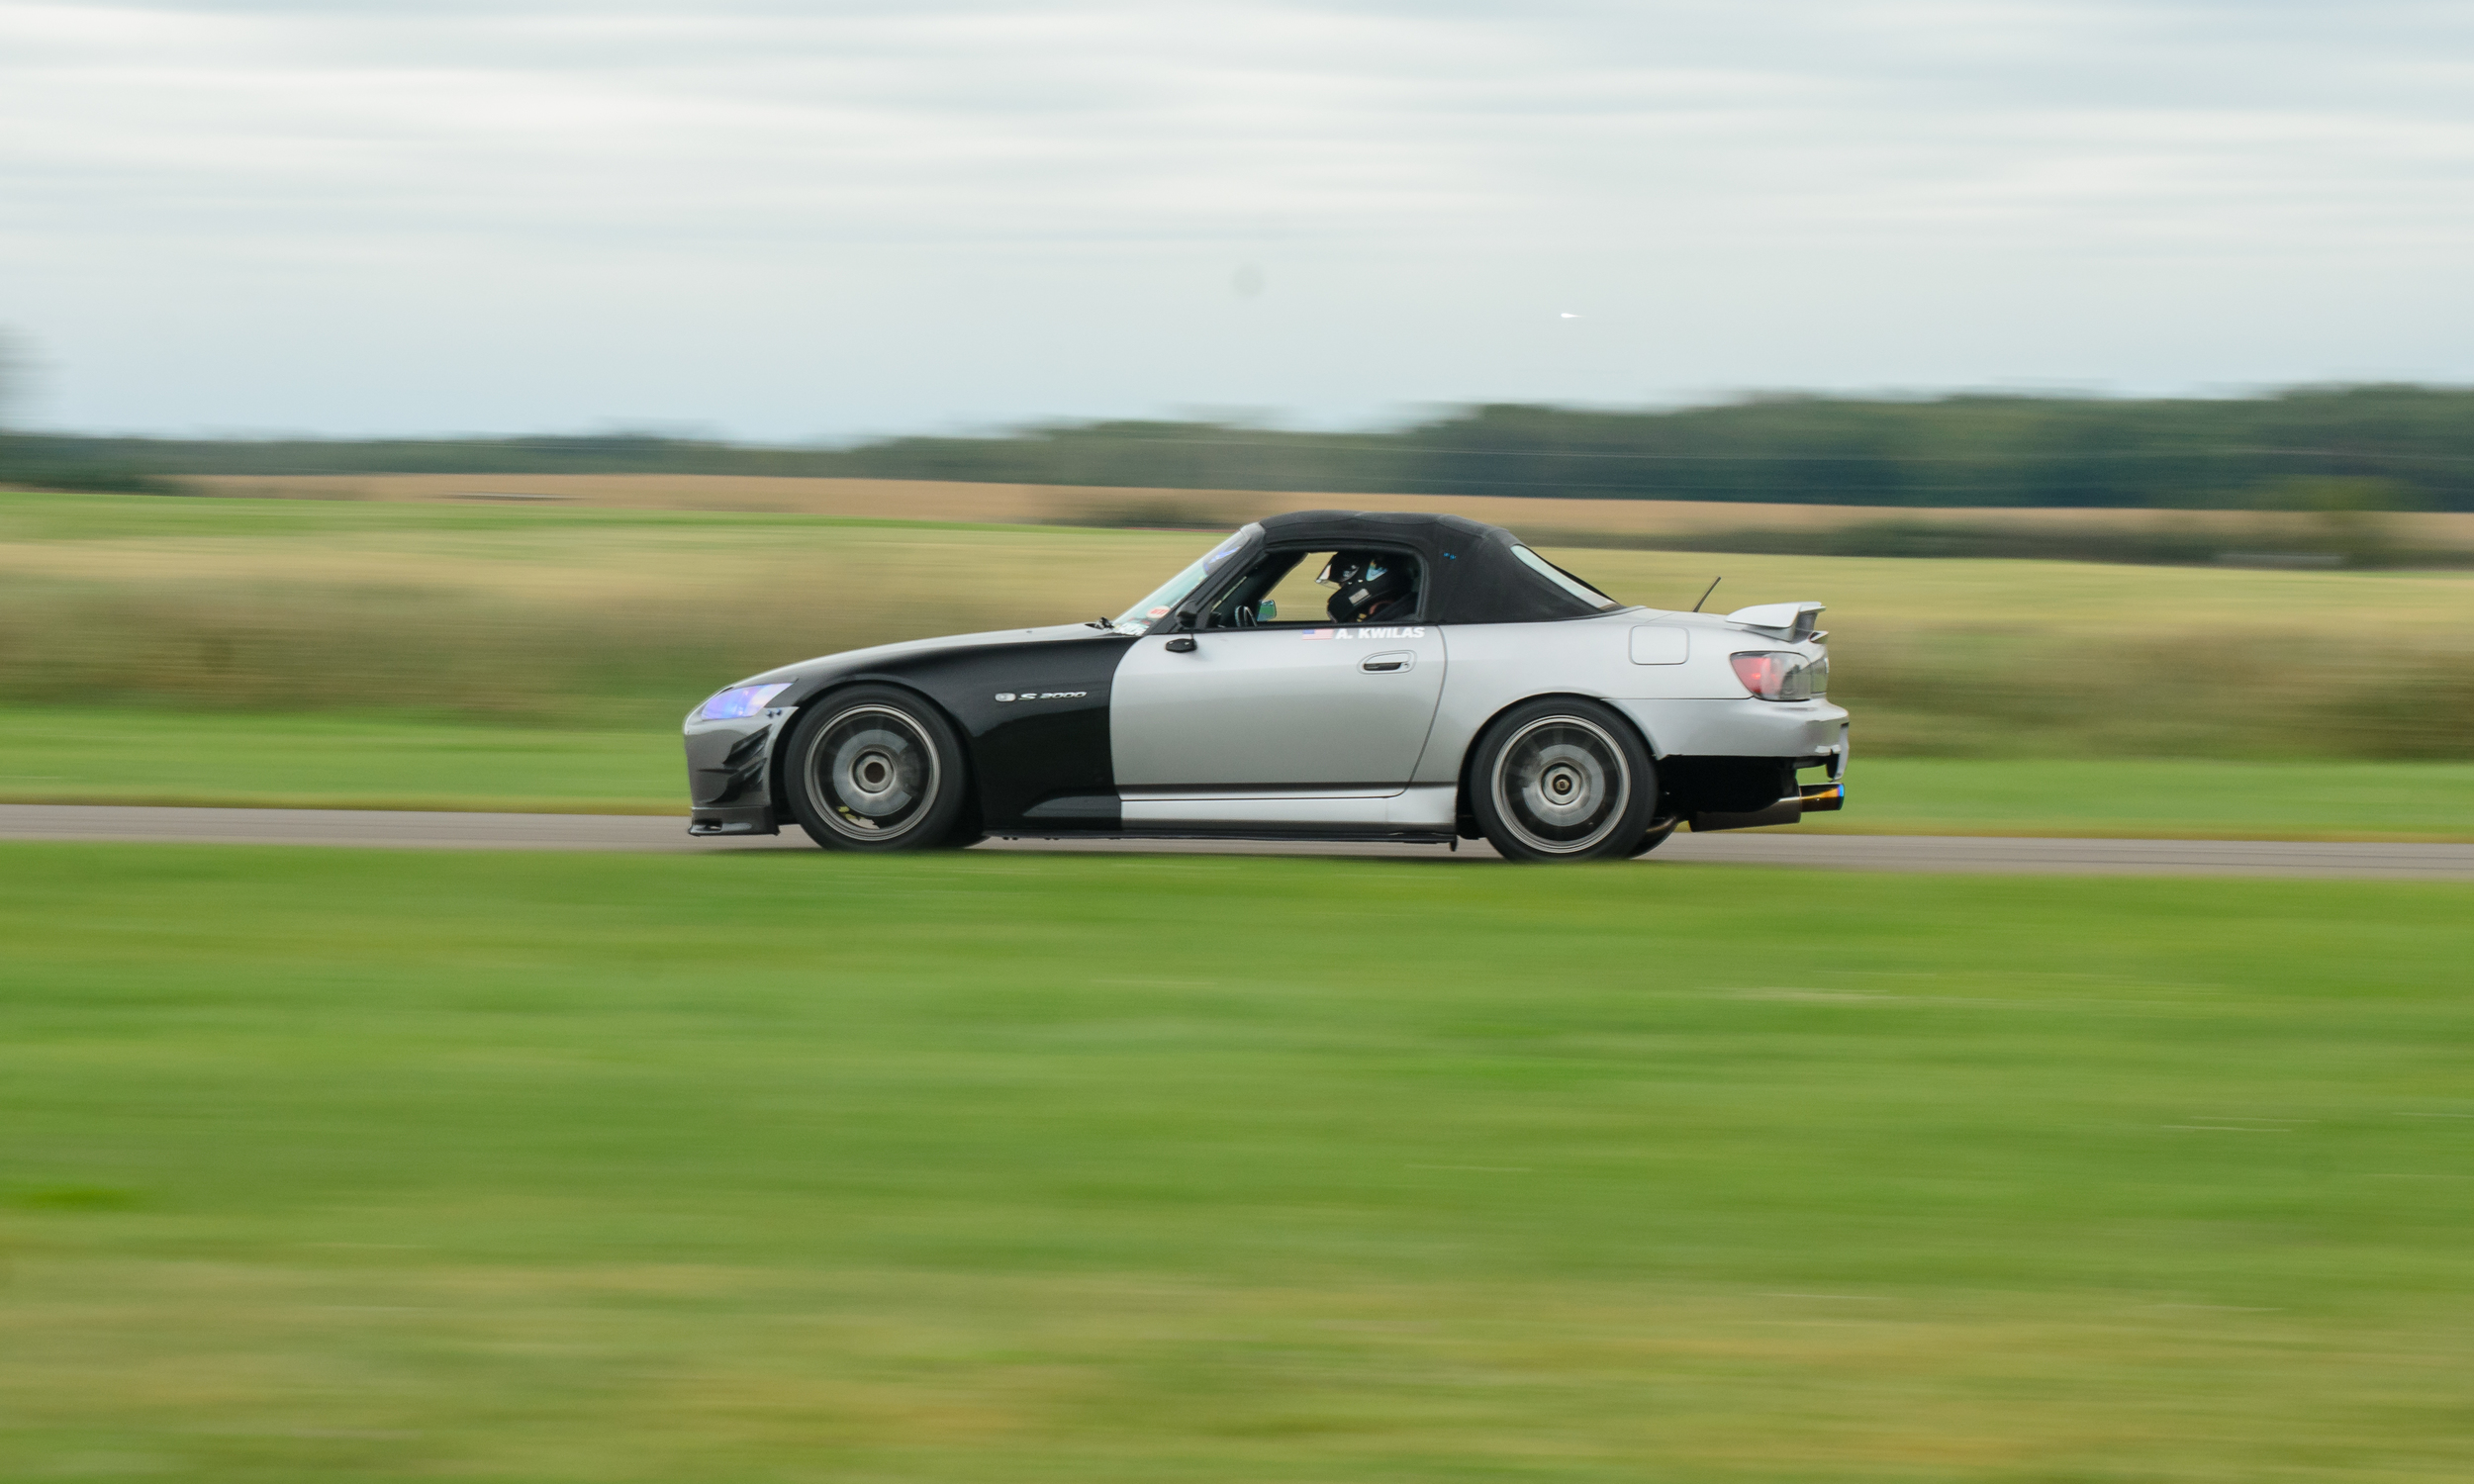 "Lacy Sports  will be bringing their CR converted S2000 to play in HPDE plus. Since HPDE plus doesn't allow aftermarket aero, Aaron decided to convert his S2000 to a ""Club Racer""  S2000. Since That particular model was put into production it makes Lacy Sport""s aerodynamics legal for HPDE plus."